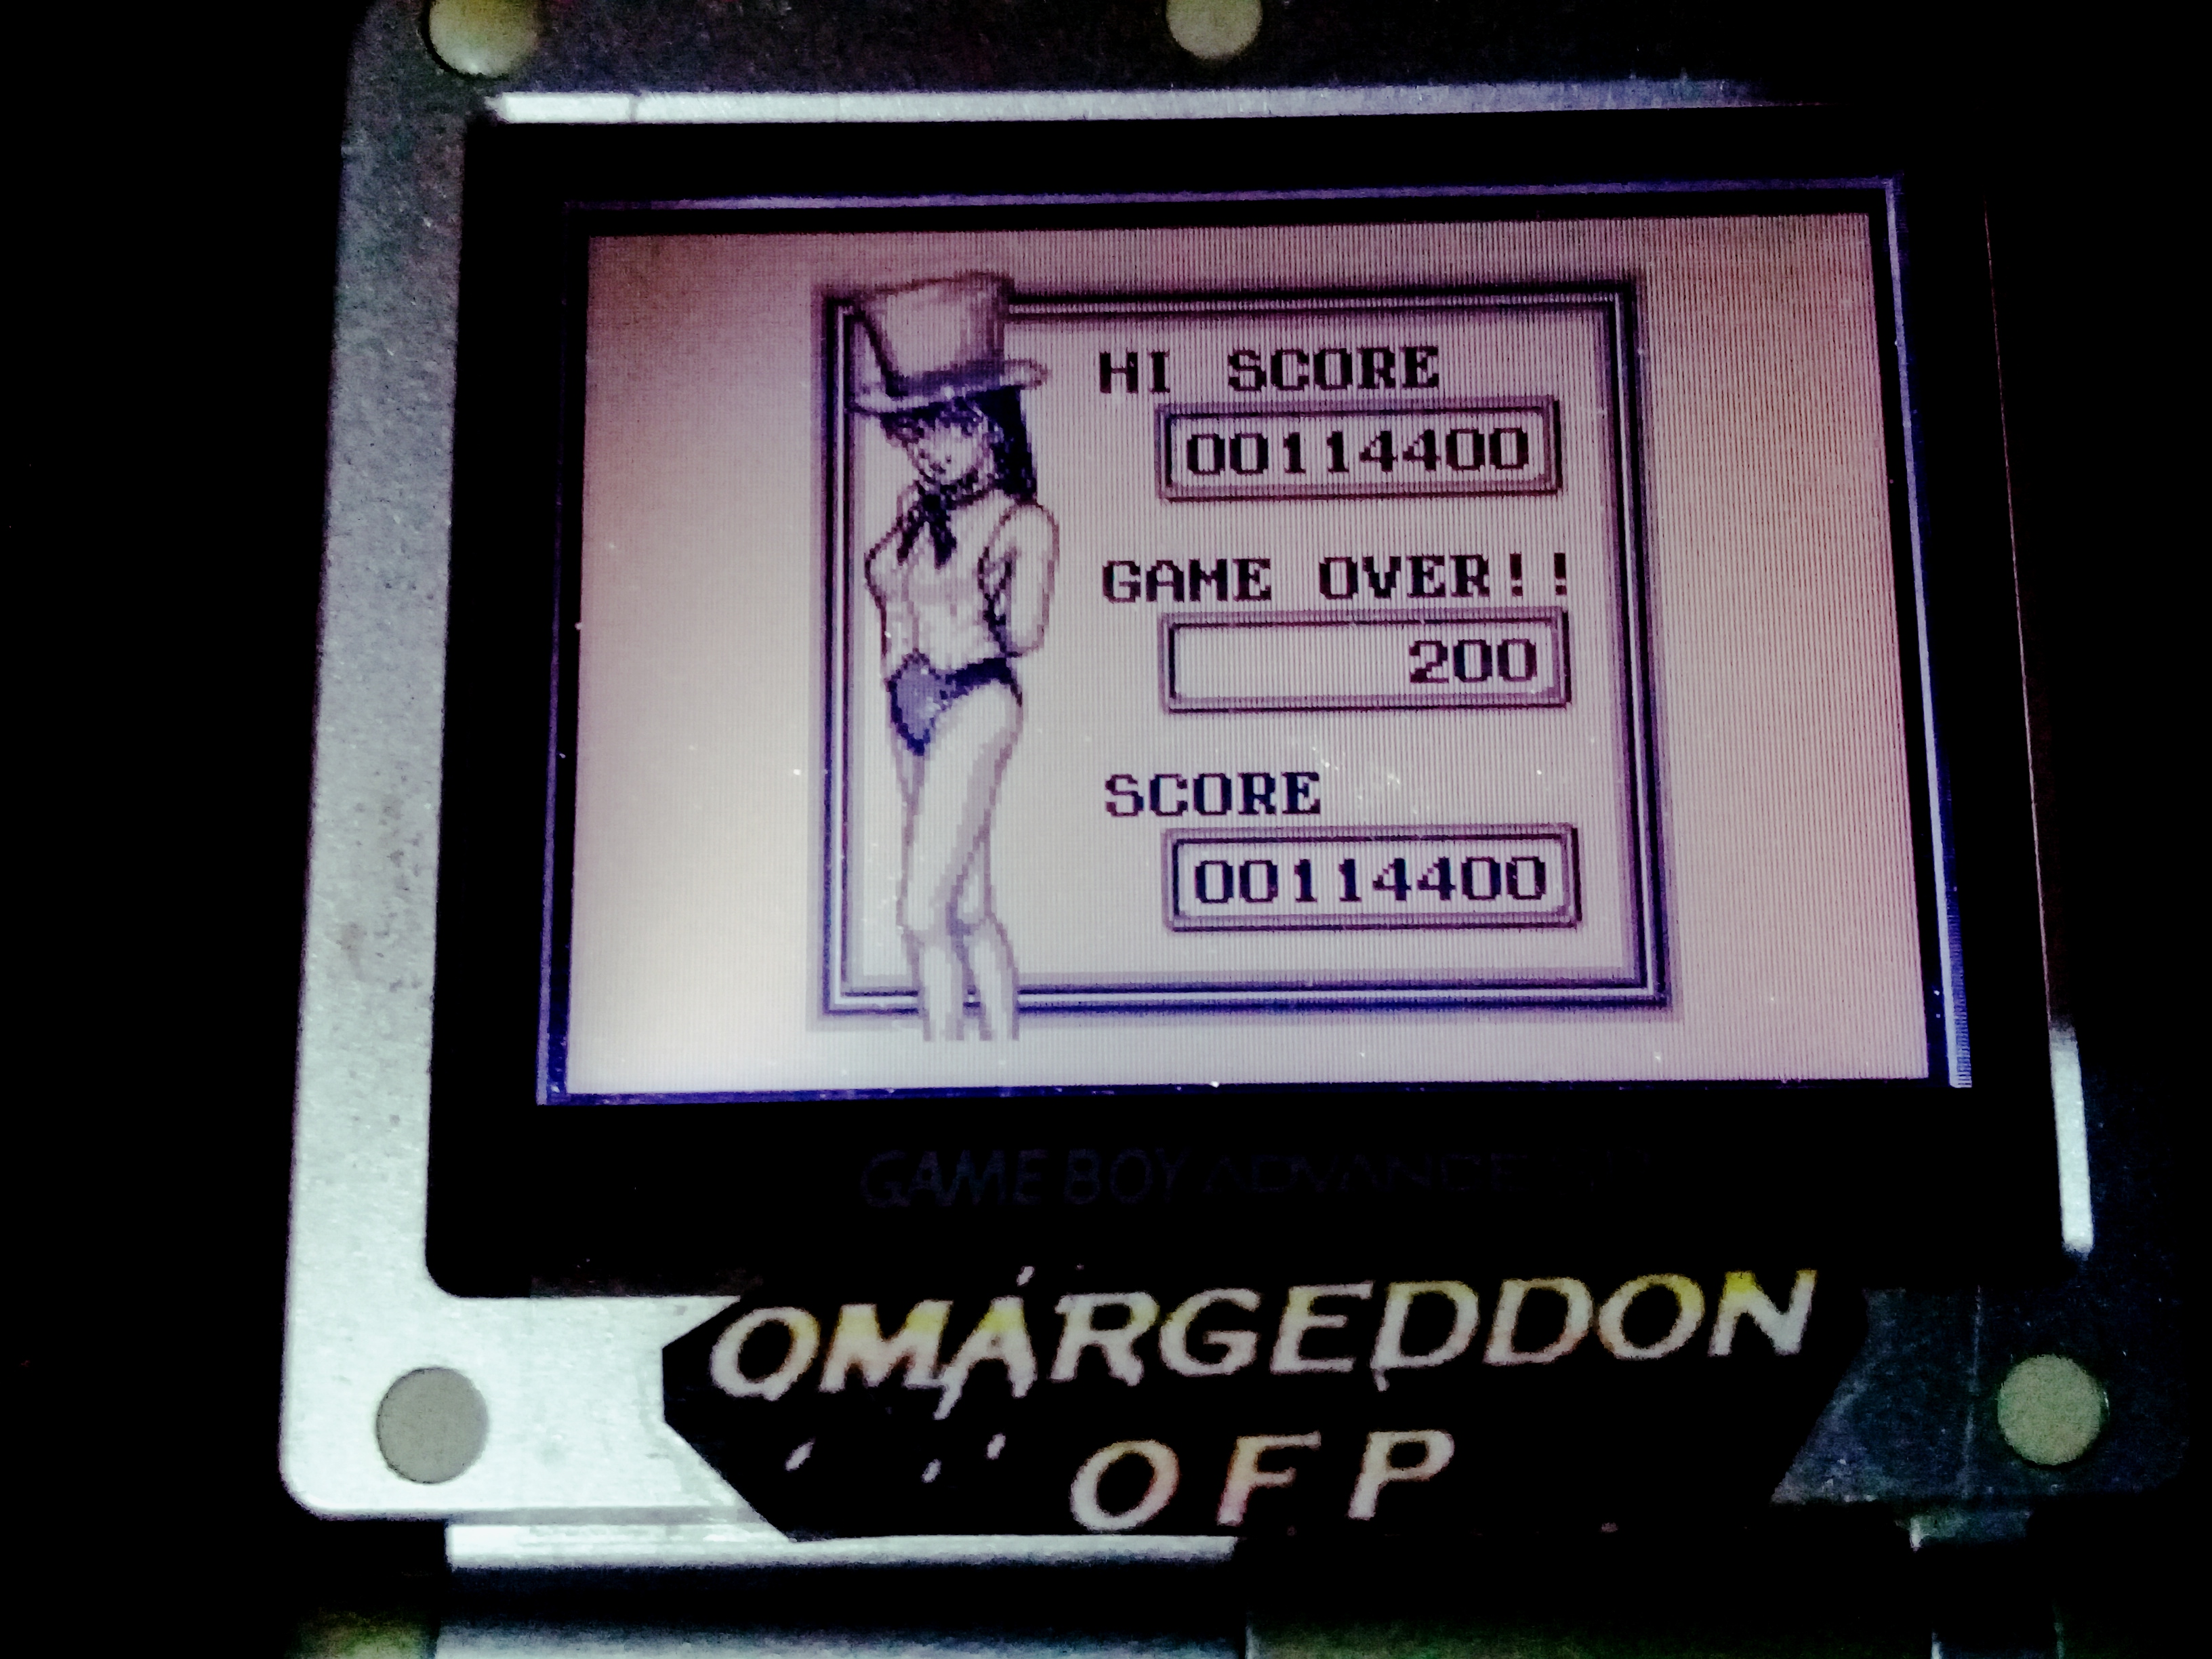 omargeddon: Pinball Party [Extra Game] (Game Boy) 114,400 points on 2020-09-14 02:53:33